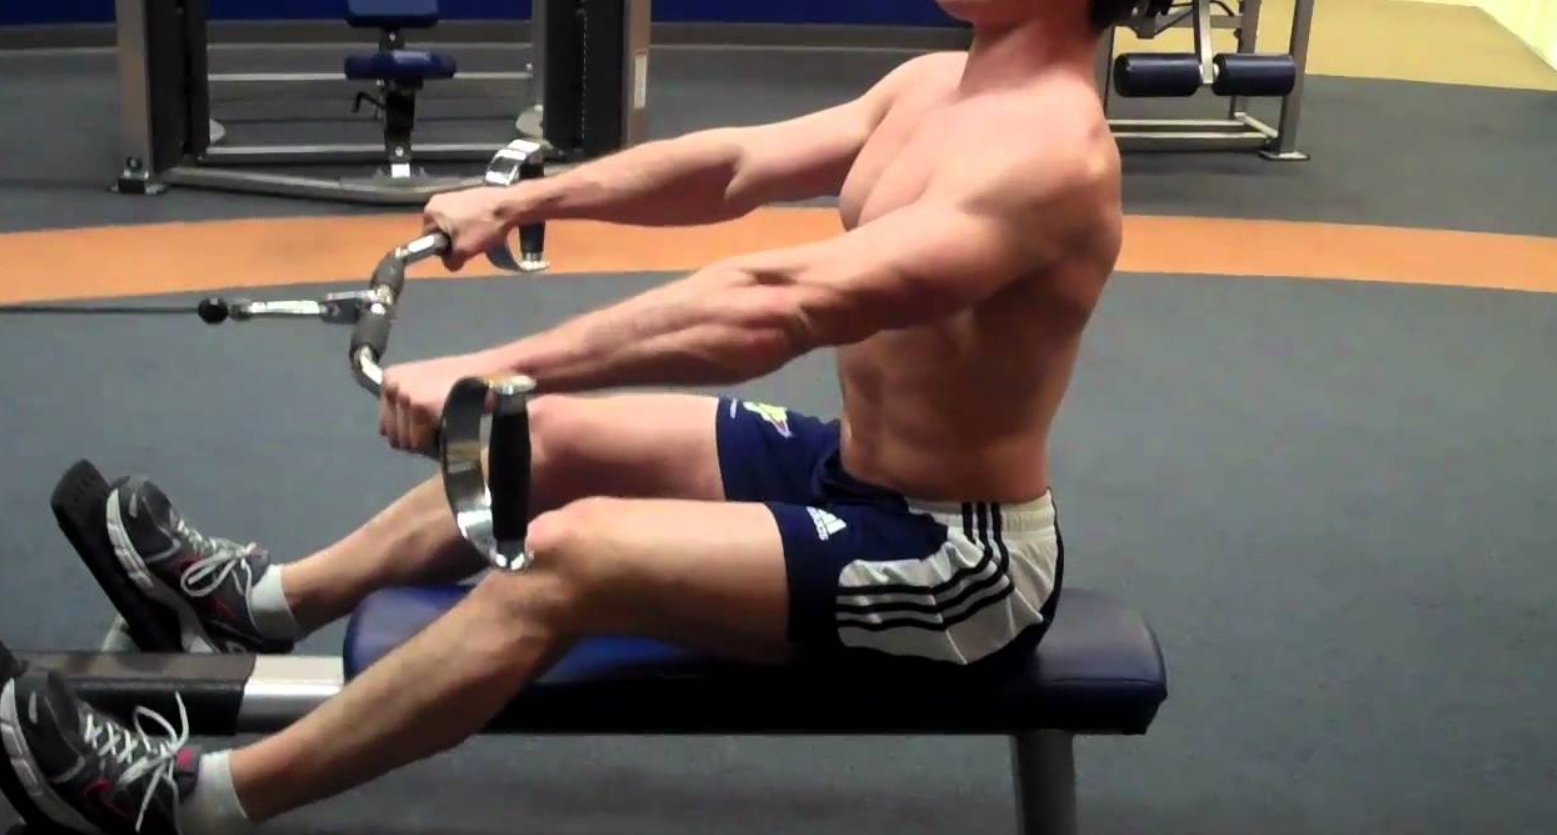 Seated Row Exercise can build the upper body strength